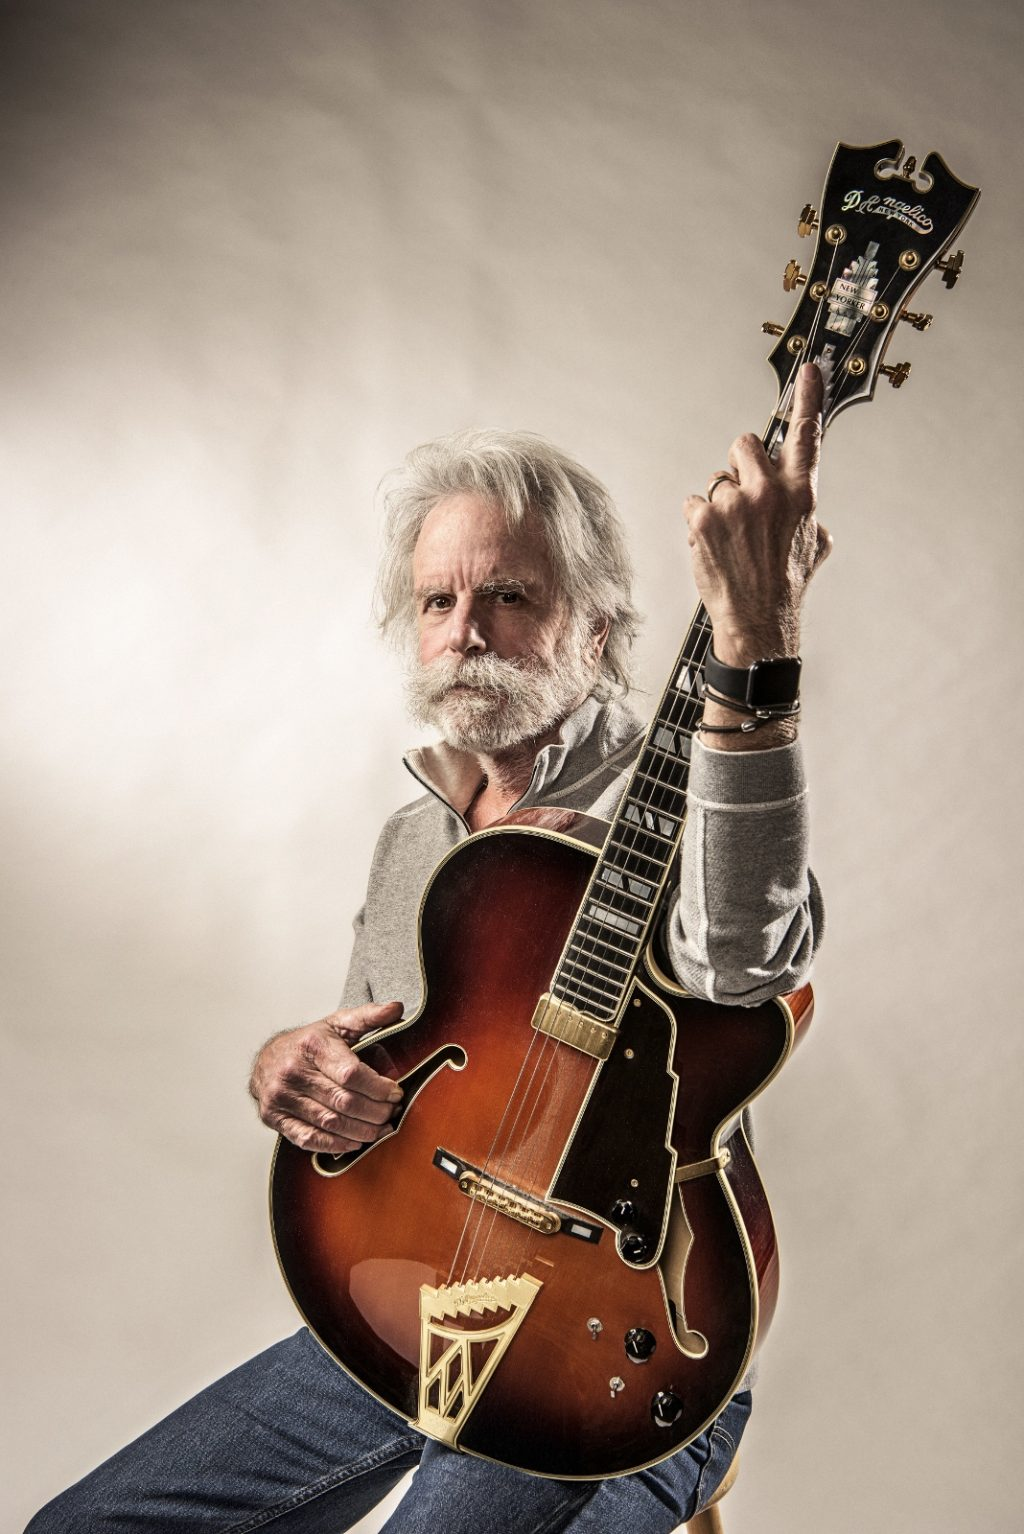 Bob Weir (courtesy of the artist)